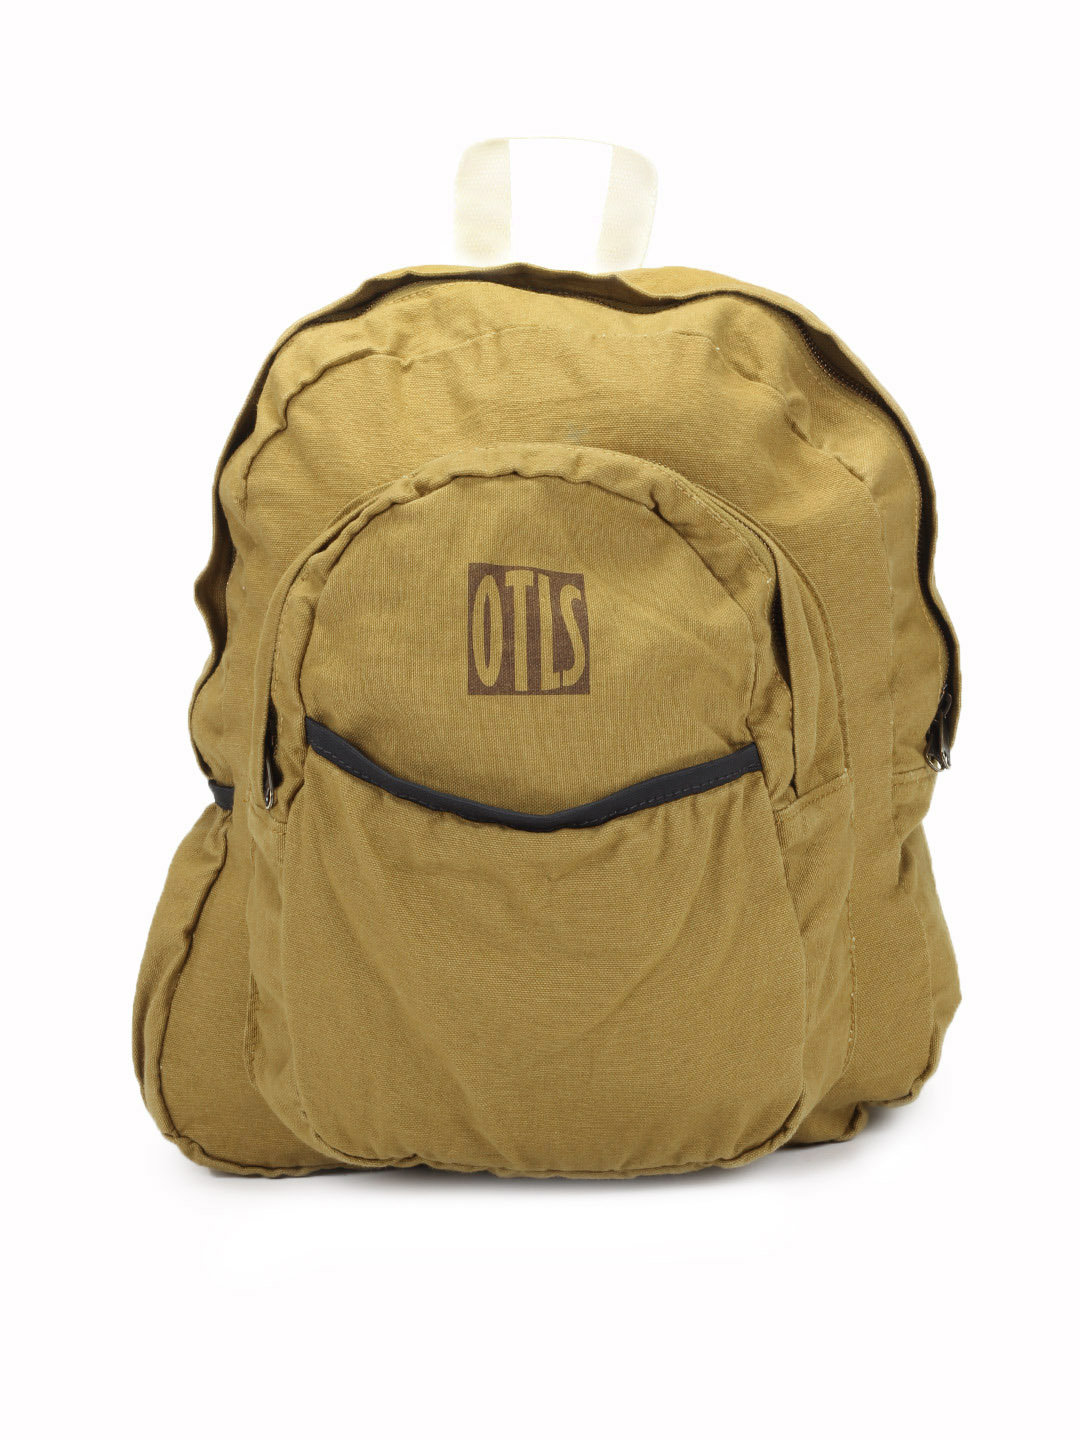 OTLS Unisex Mustard Brown Backpack